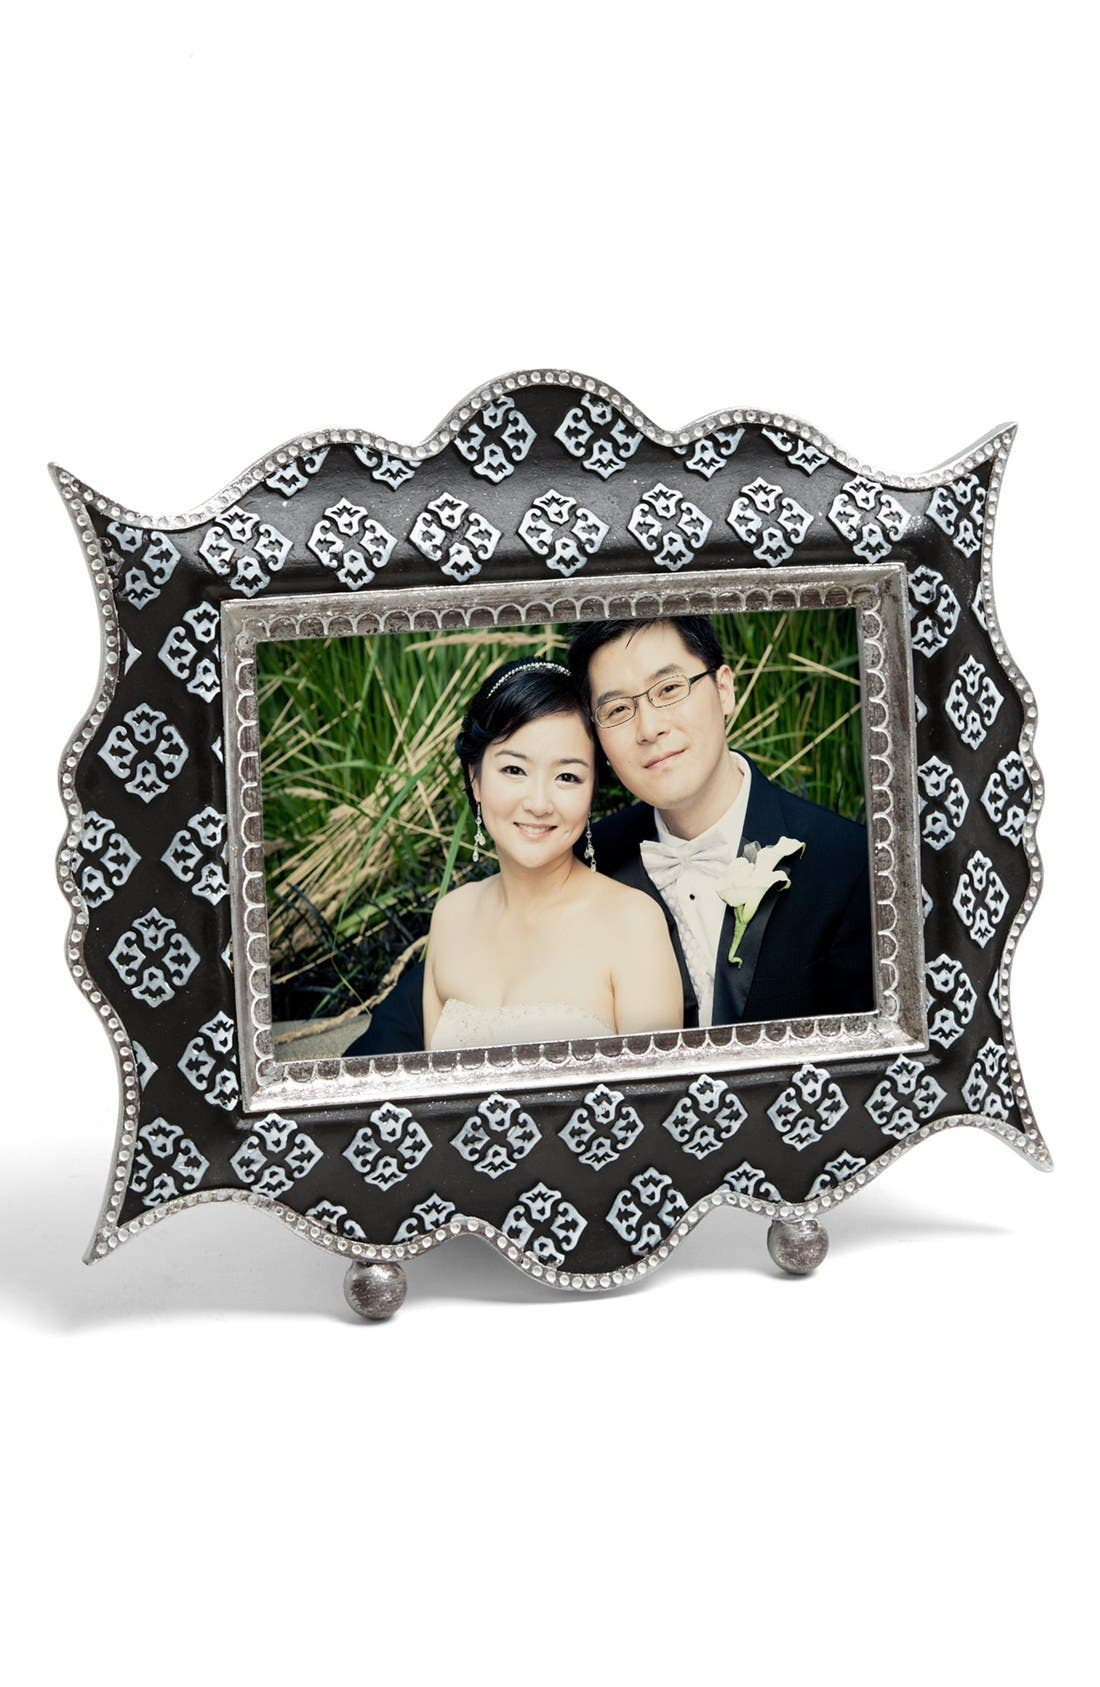 Main Image - 'Tulle' Picture Frame (4x6)